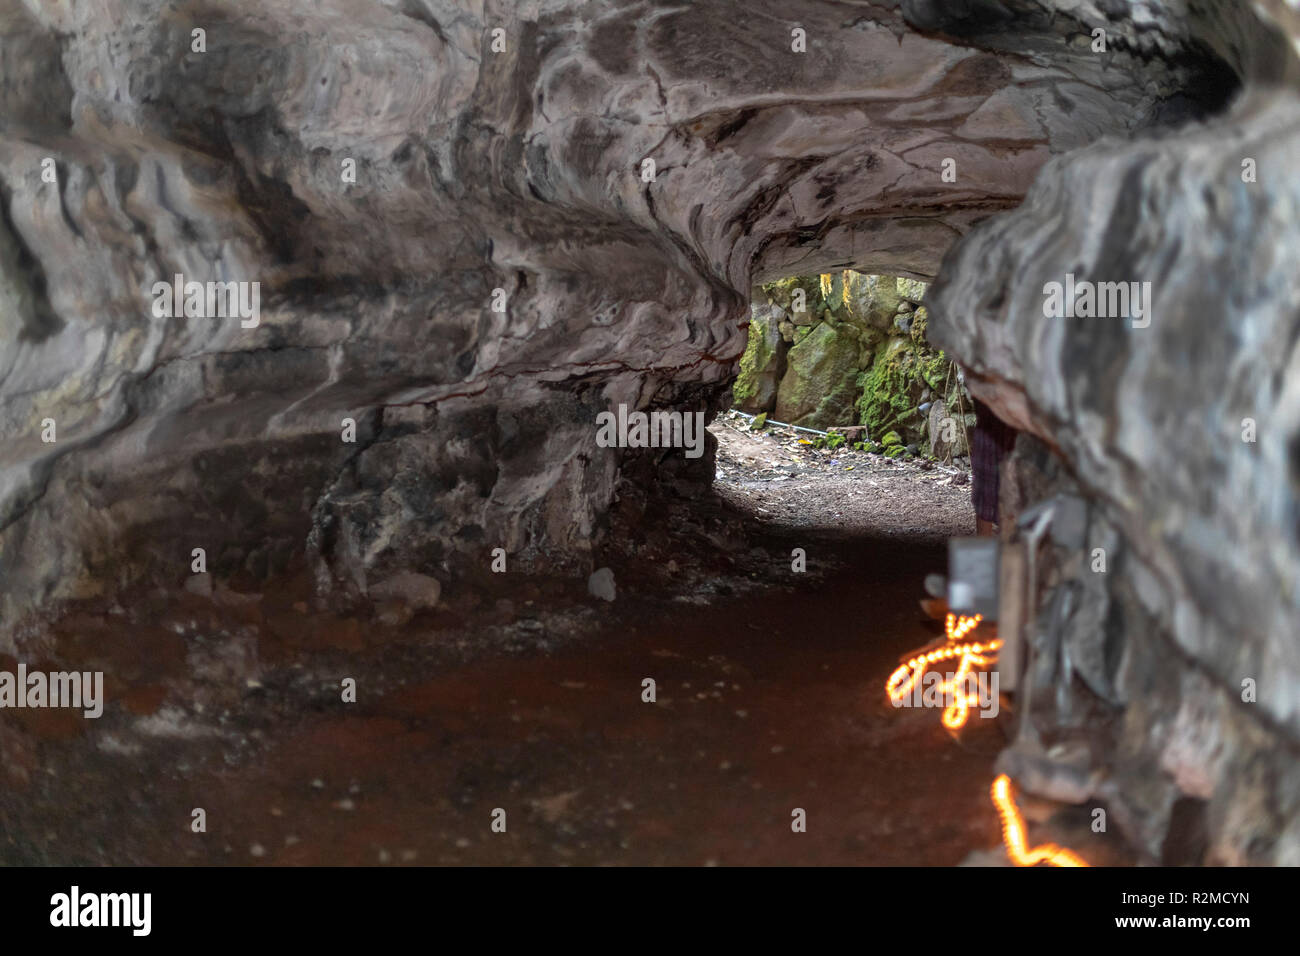 Lava Tube Cave Stock Photos Amp Lava Tube Cave Stock Images